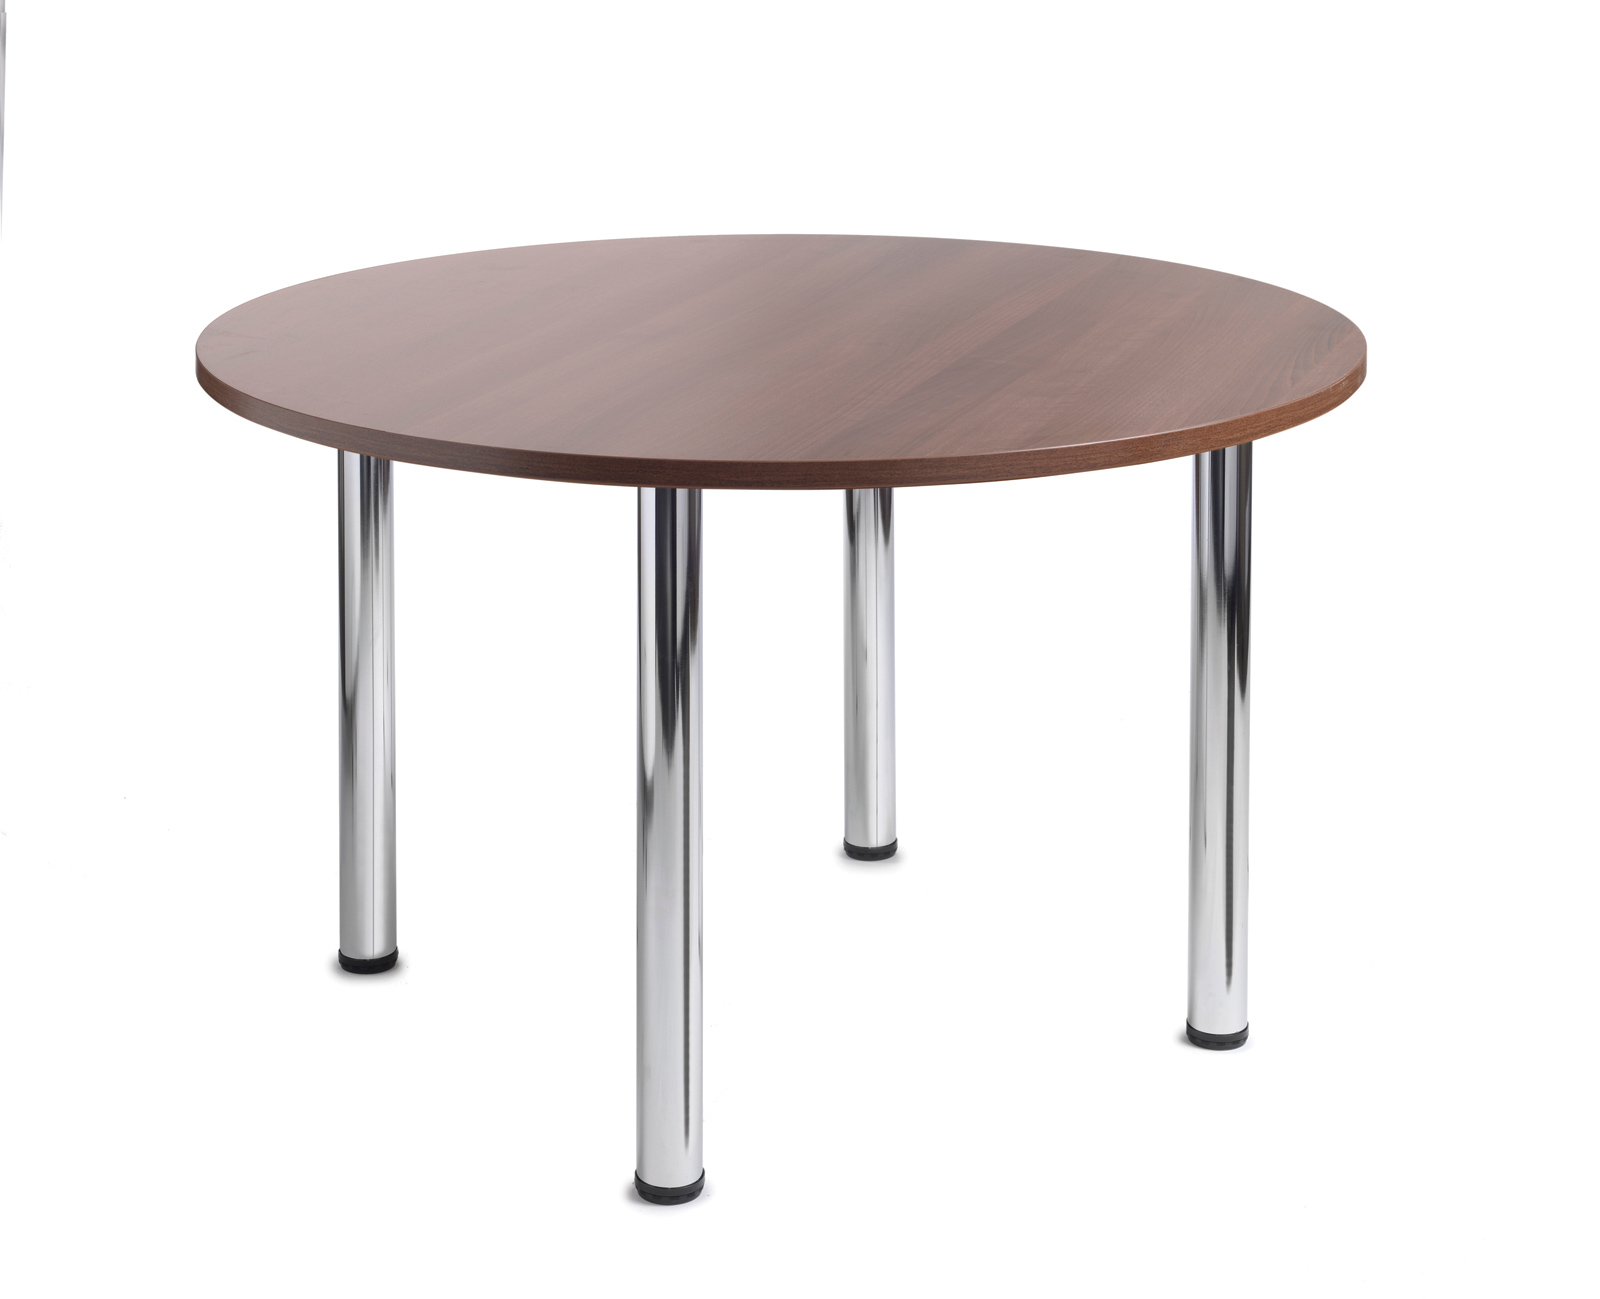 1200mm diameter Top + Chrome radial Legs - Walnut